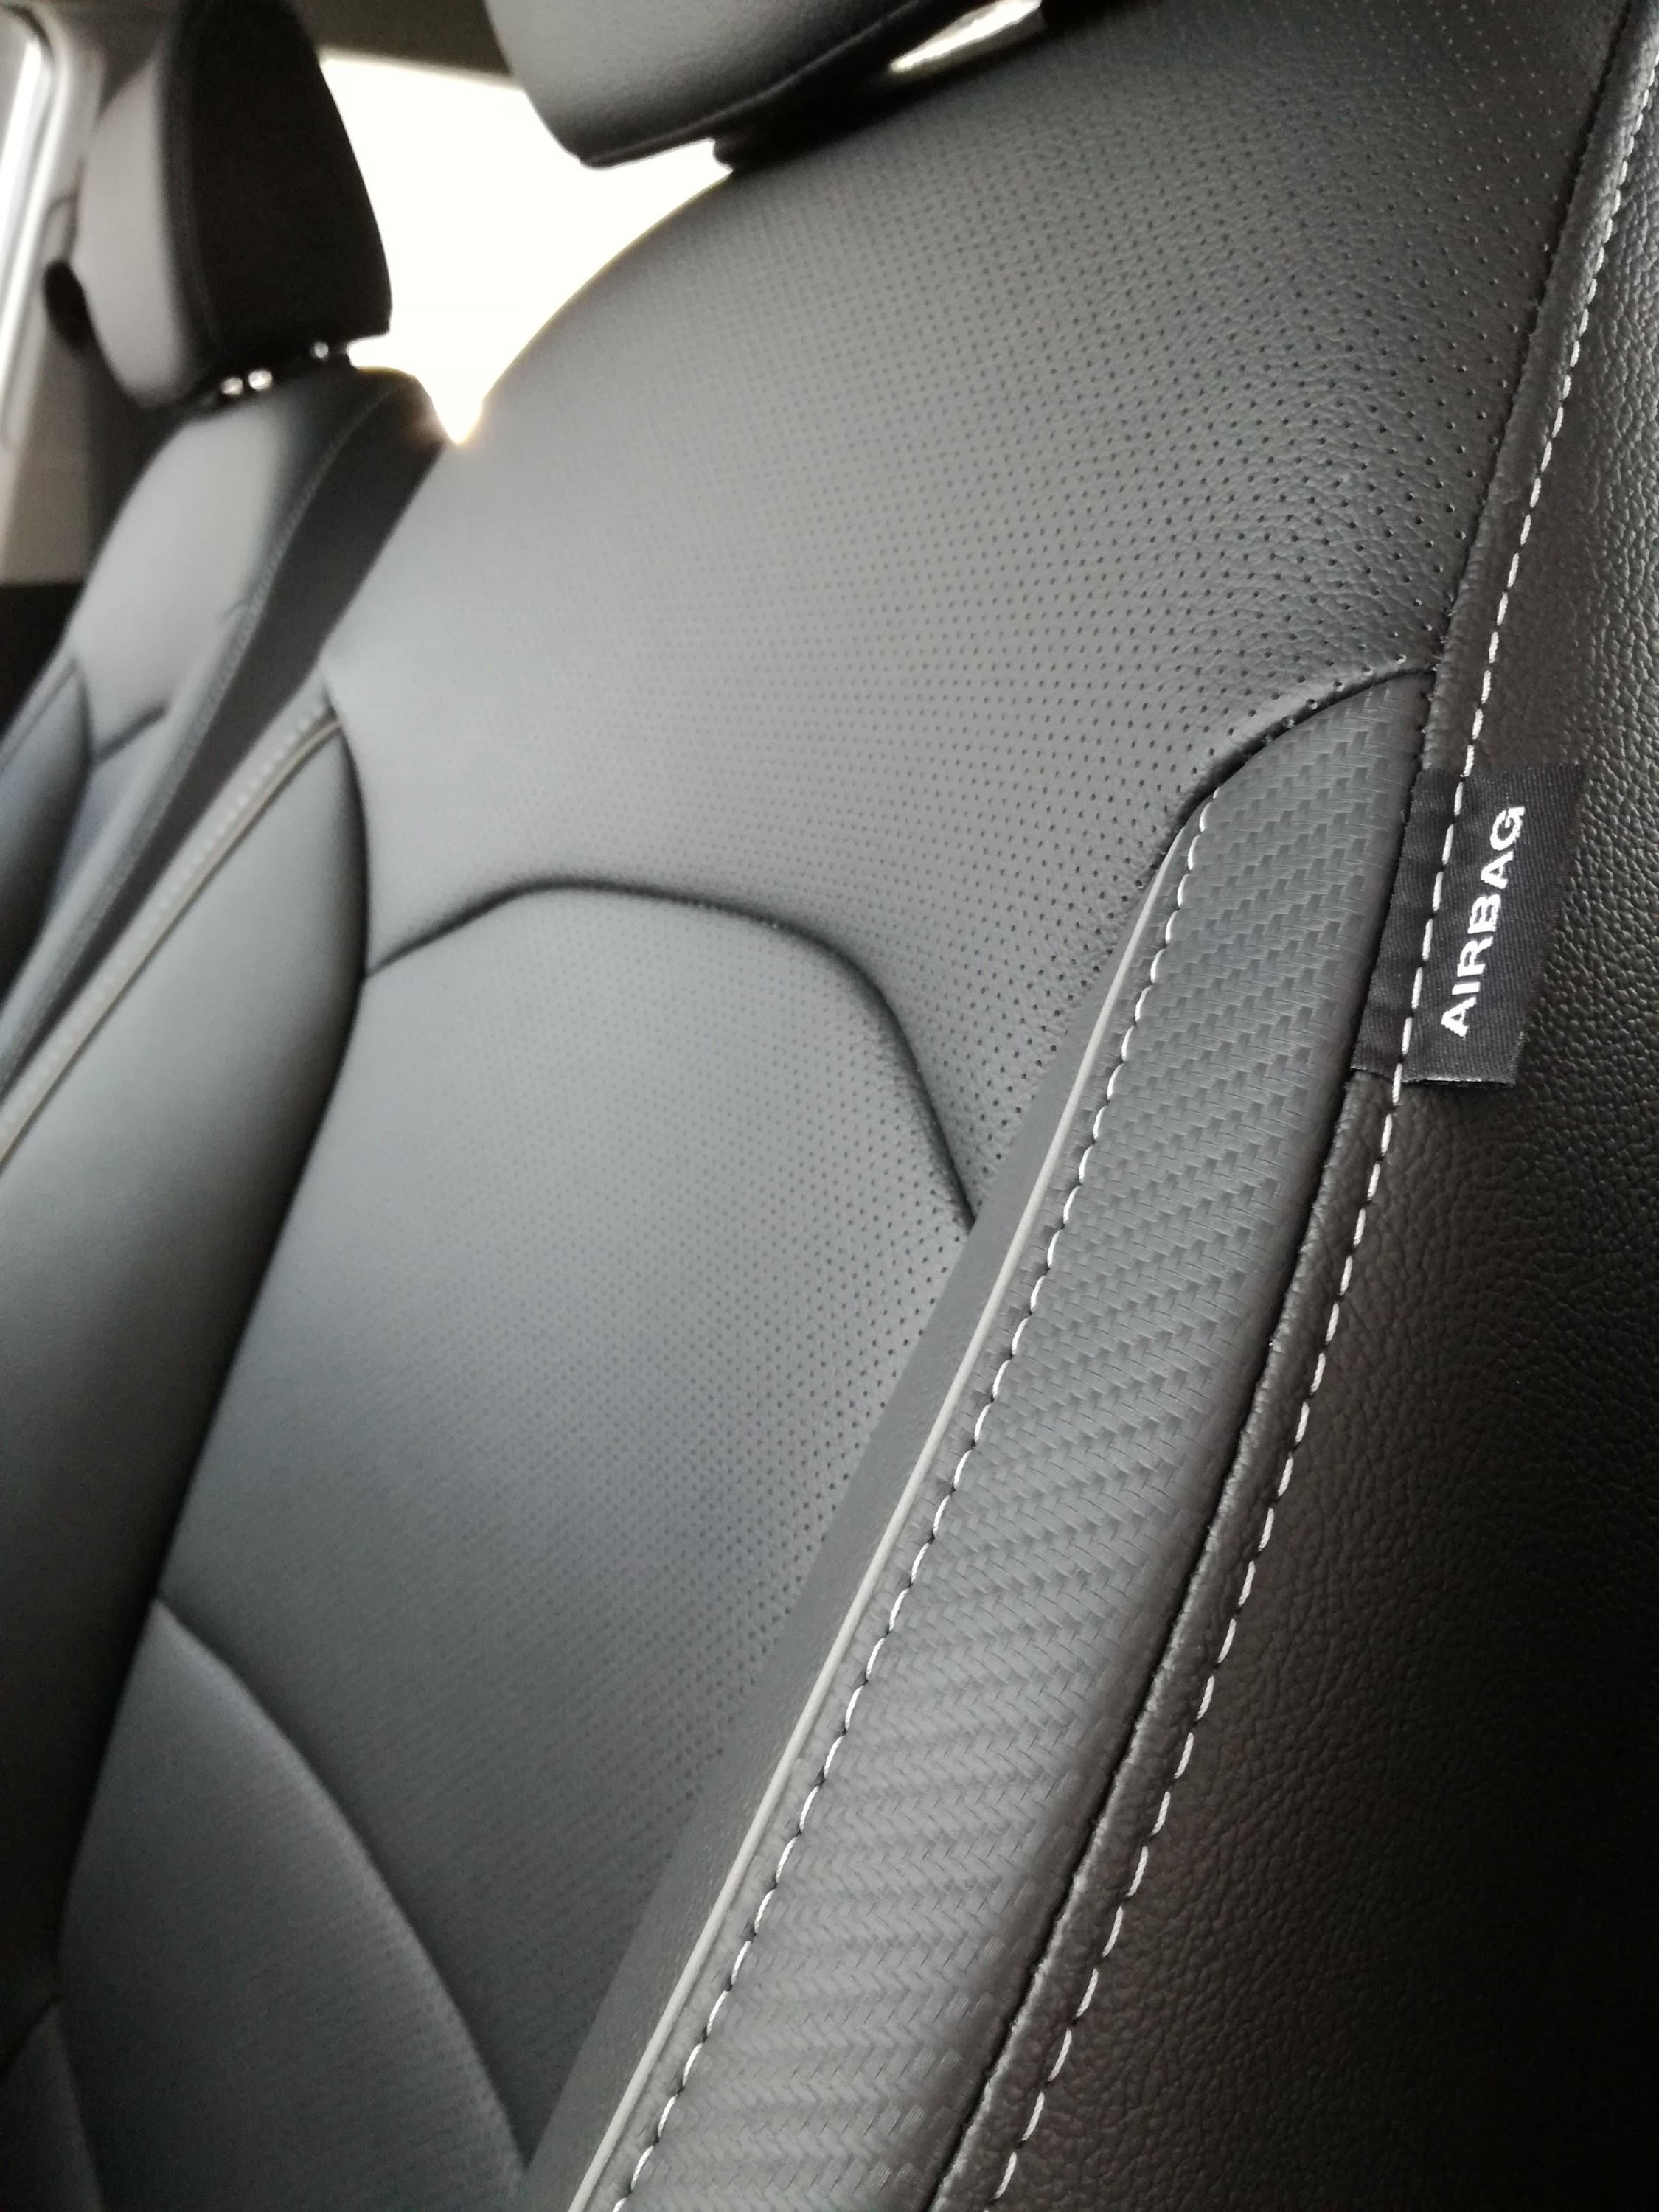 Black Leather upholstery.